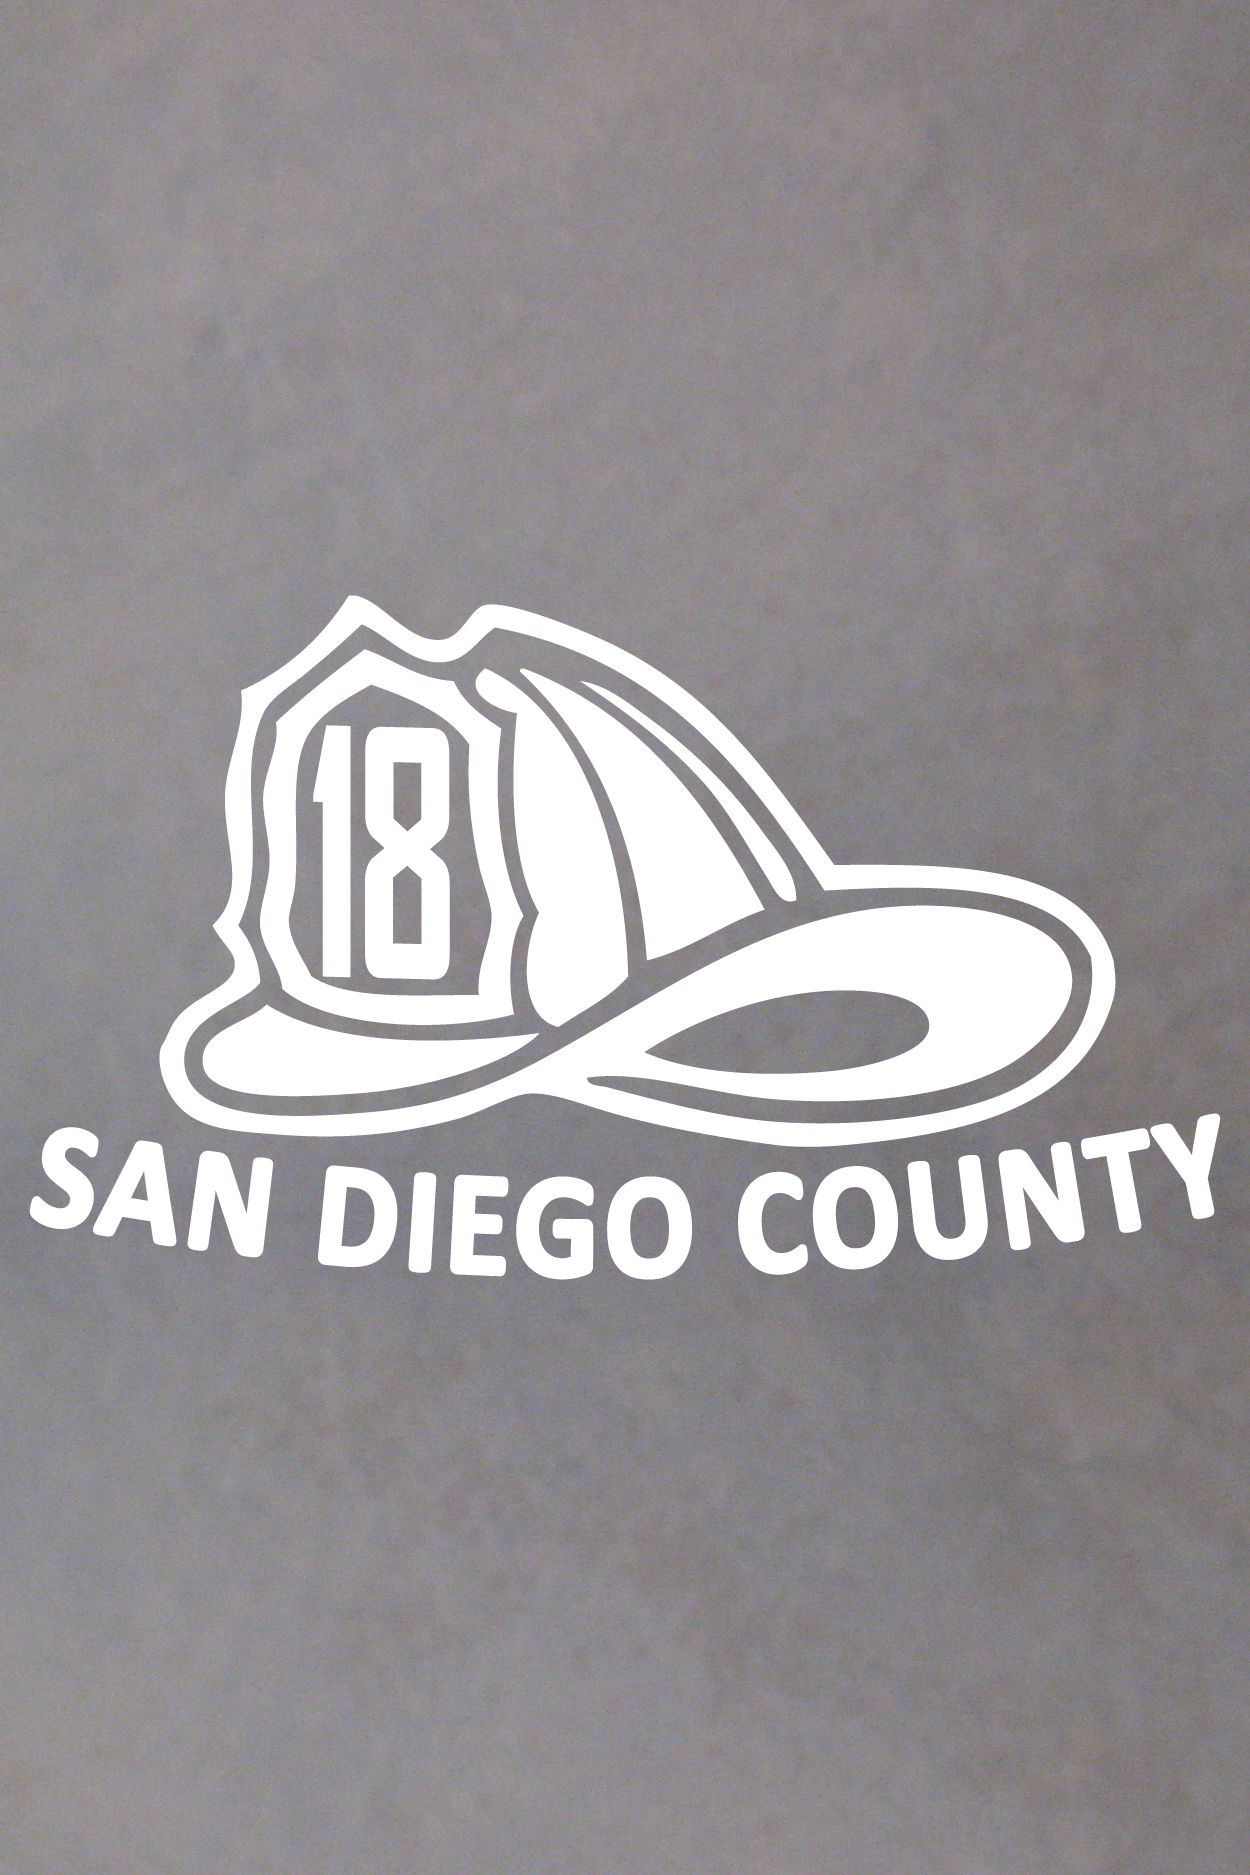 Custom Fire Department Name and Number Helmet Decal